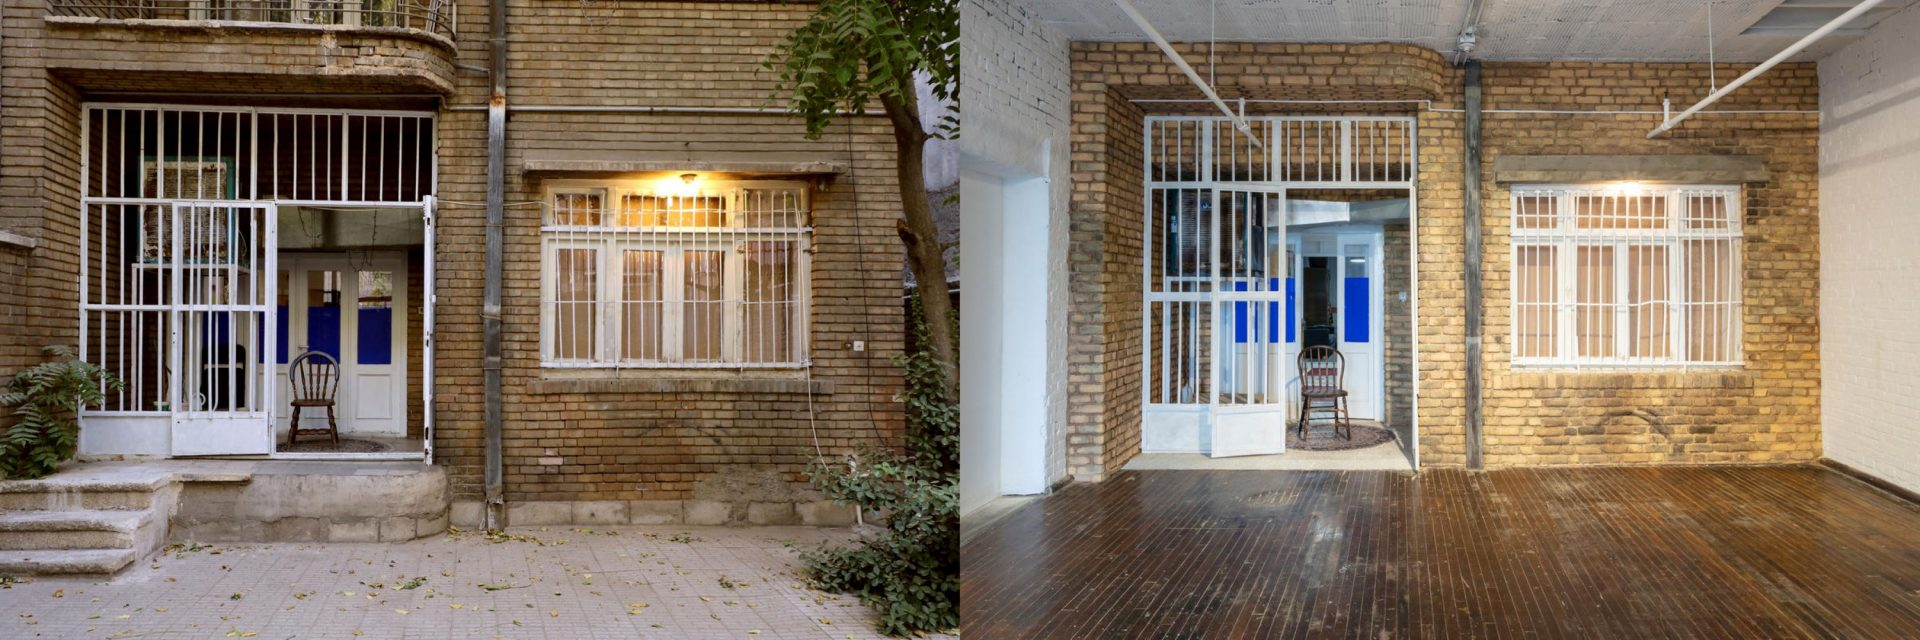 """The entrance to Sohrab Kashani's Tehran, Iran apartment (left) and the facade of """"The Other Apartment"""" at the Mattress Factory Museum (right)."""